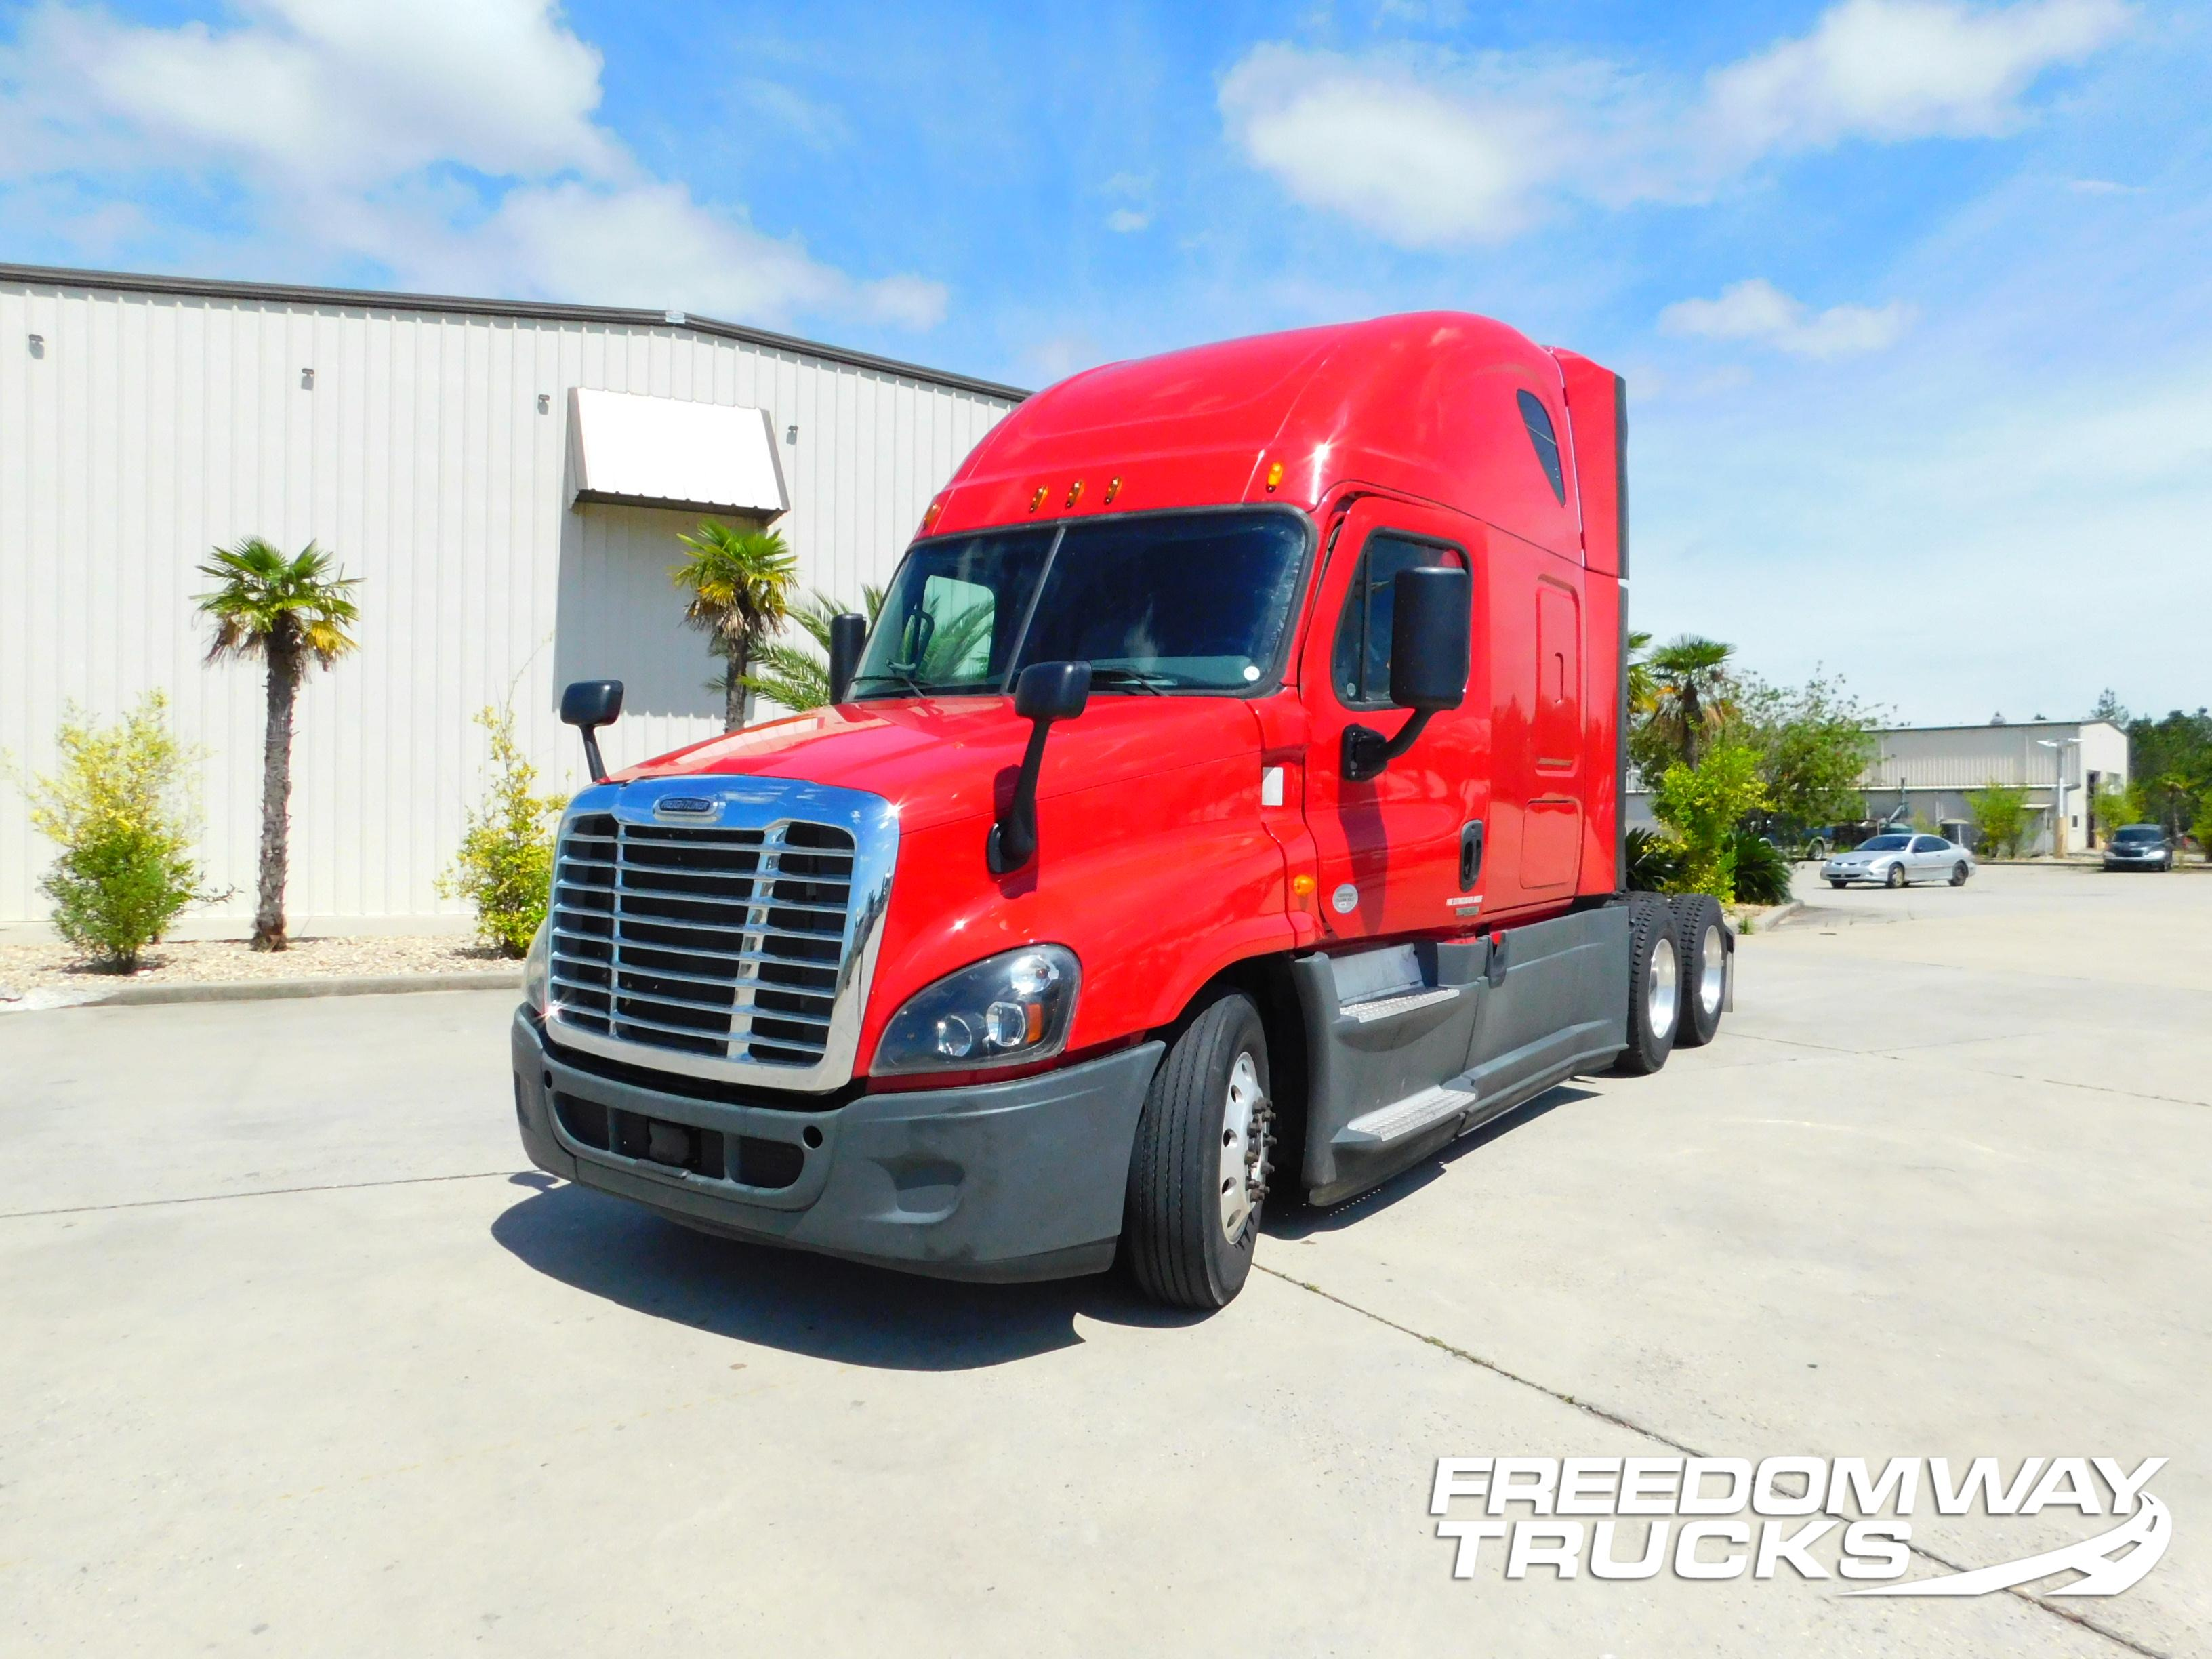 USED 2015 FREIGHTLINER CASCADIA DAYCAB TRUCK #180069